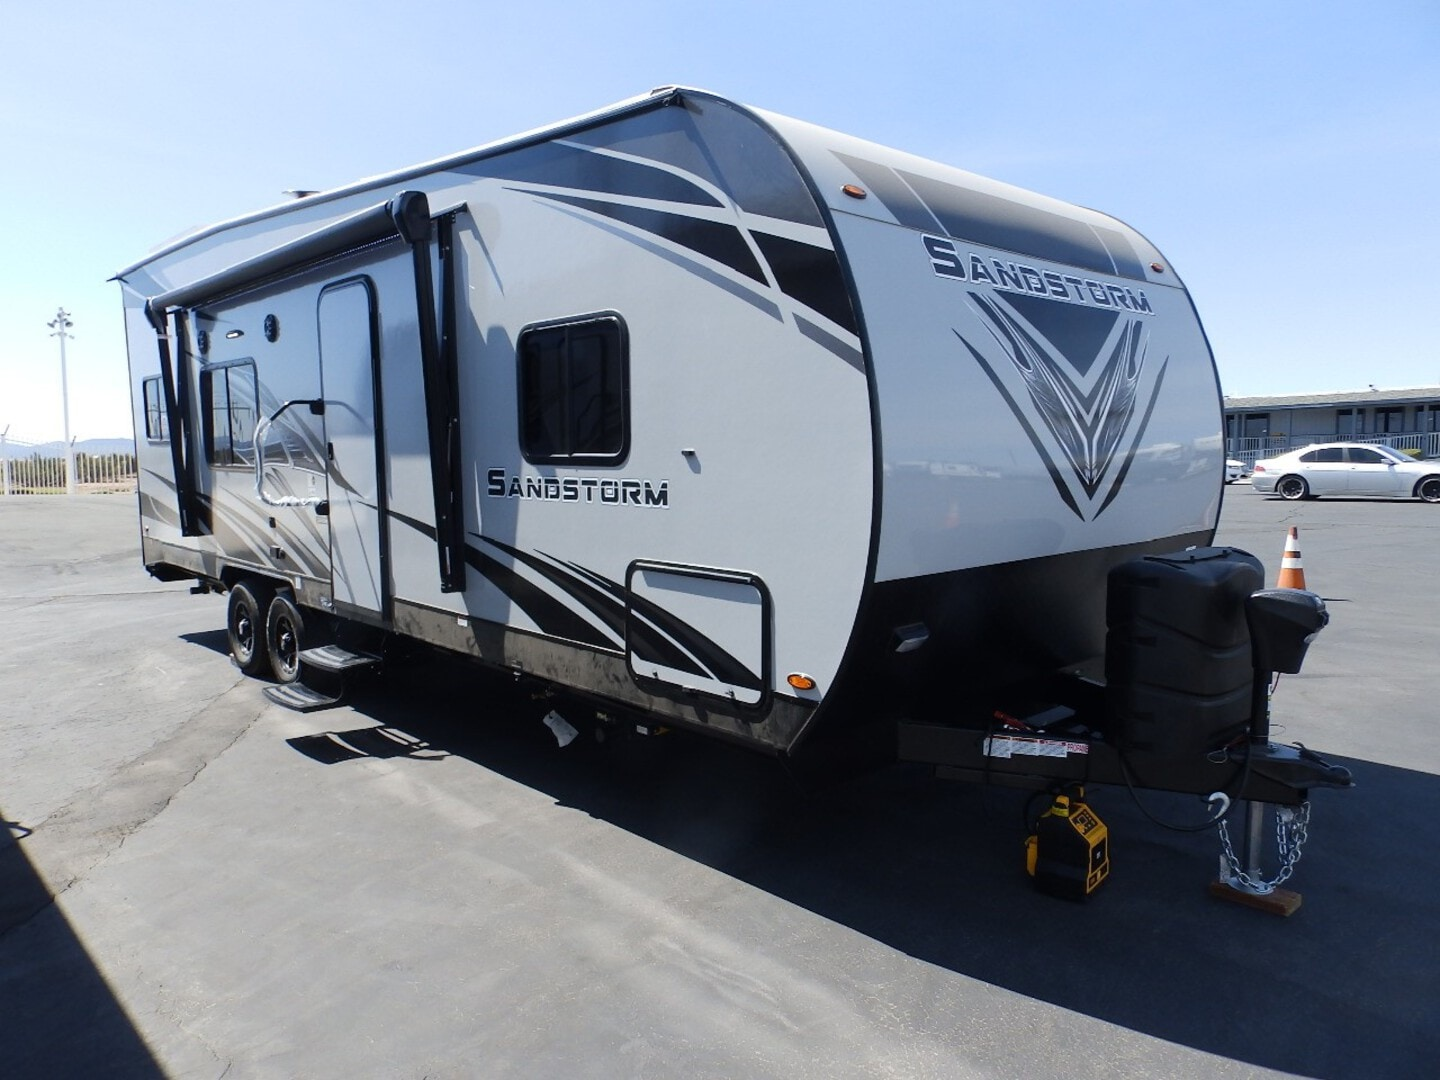 New, 2022, Forest River, SANDSTORM 242GSLC, FRONT WALK AROUND QUEEN BED, REAR ELECTRIC BED AND DINETTE, 260 WATT SOLAR PANEL, ARCTIC PACKAGE, 4000 ONAN GENERATOR, Toy Haulers